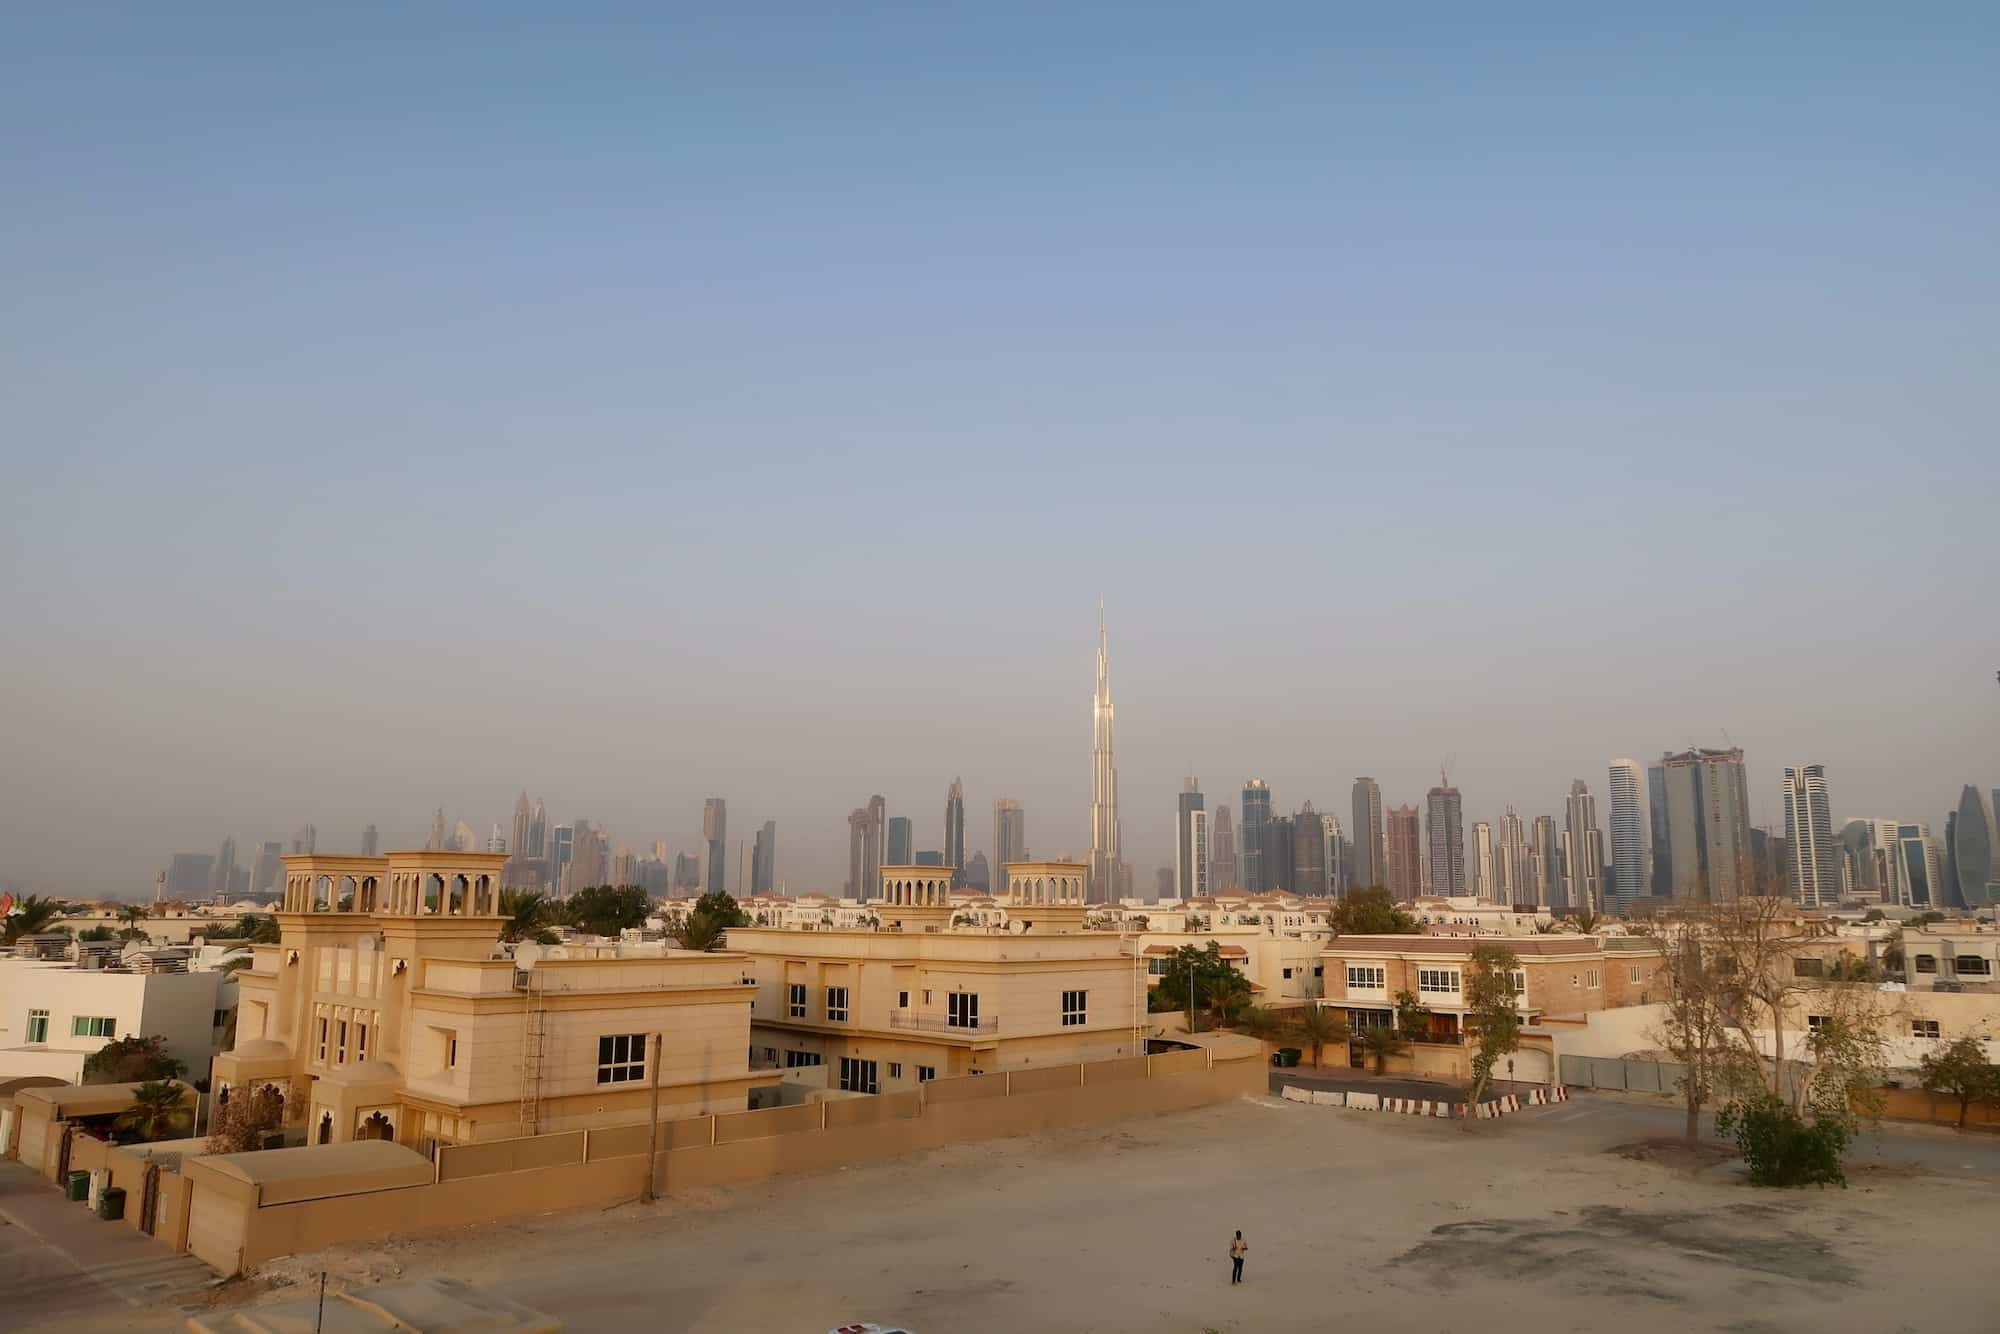 Jumeirah Archaeological Site: Ruins of Dubai's Ancient Seaport